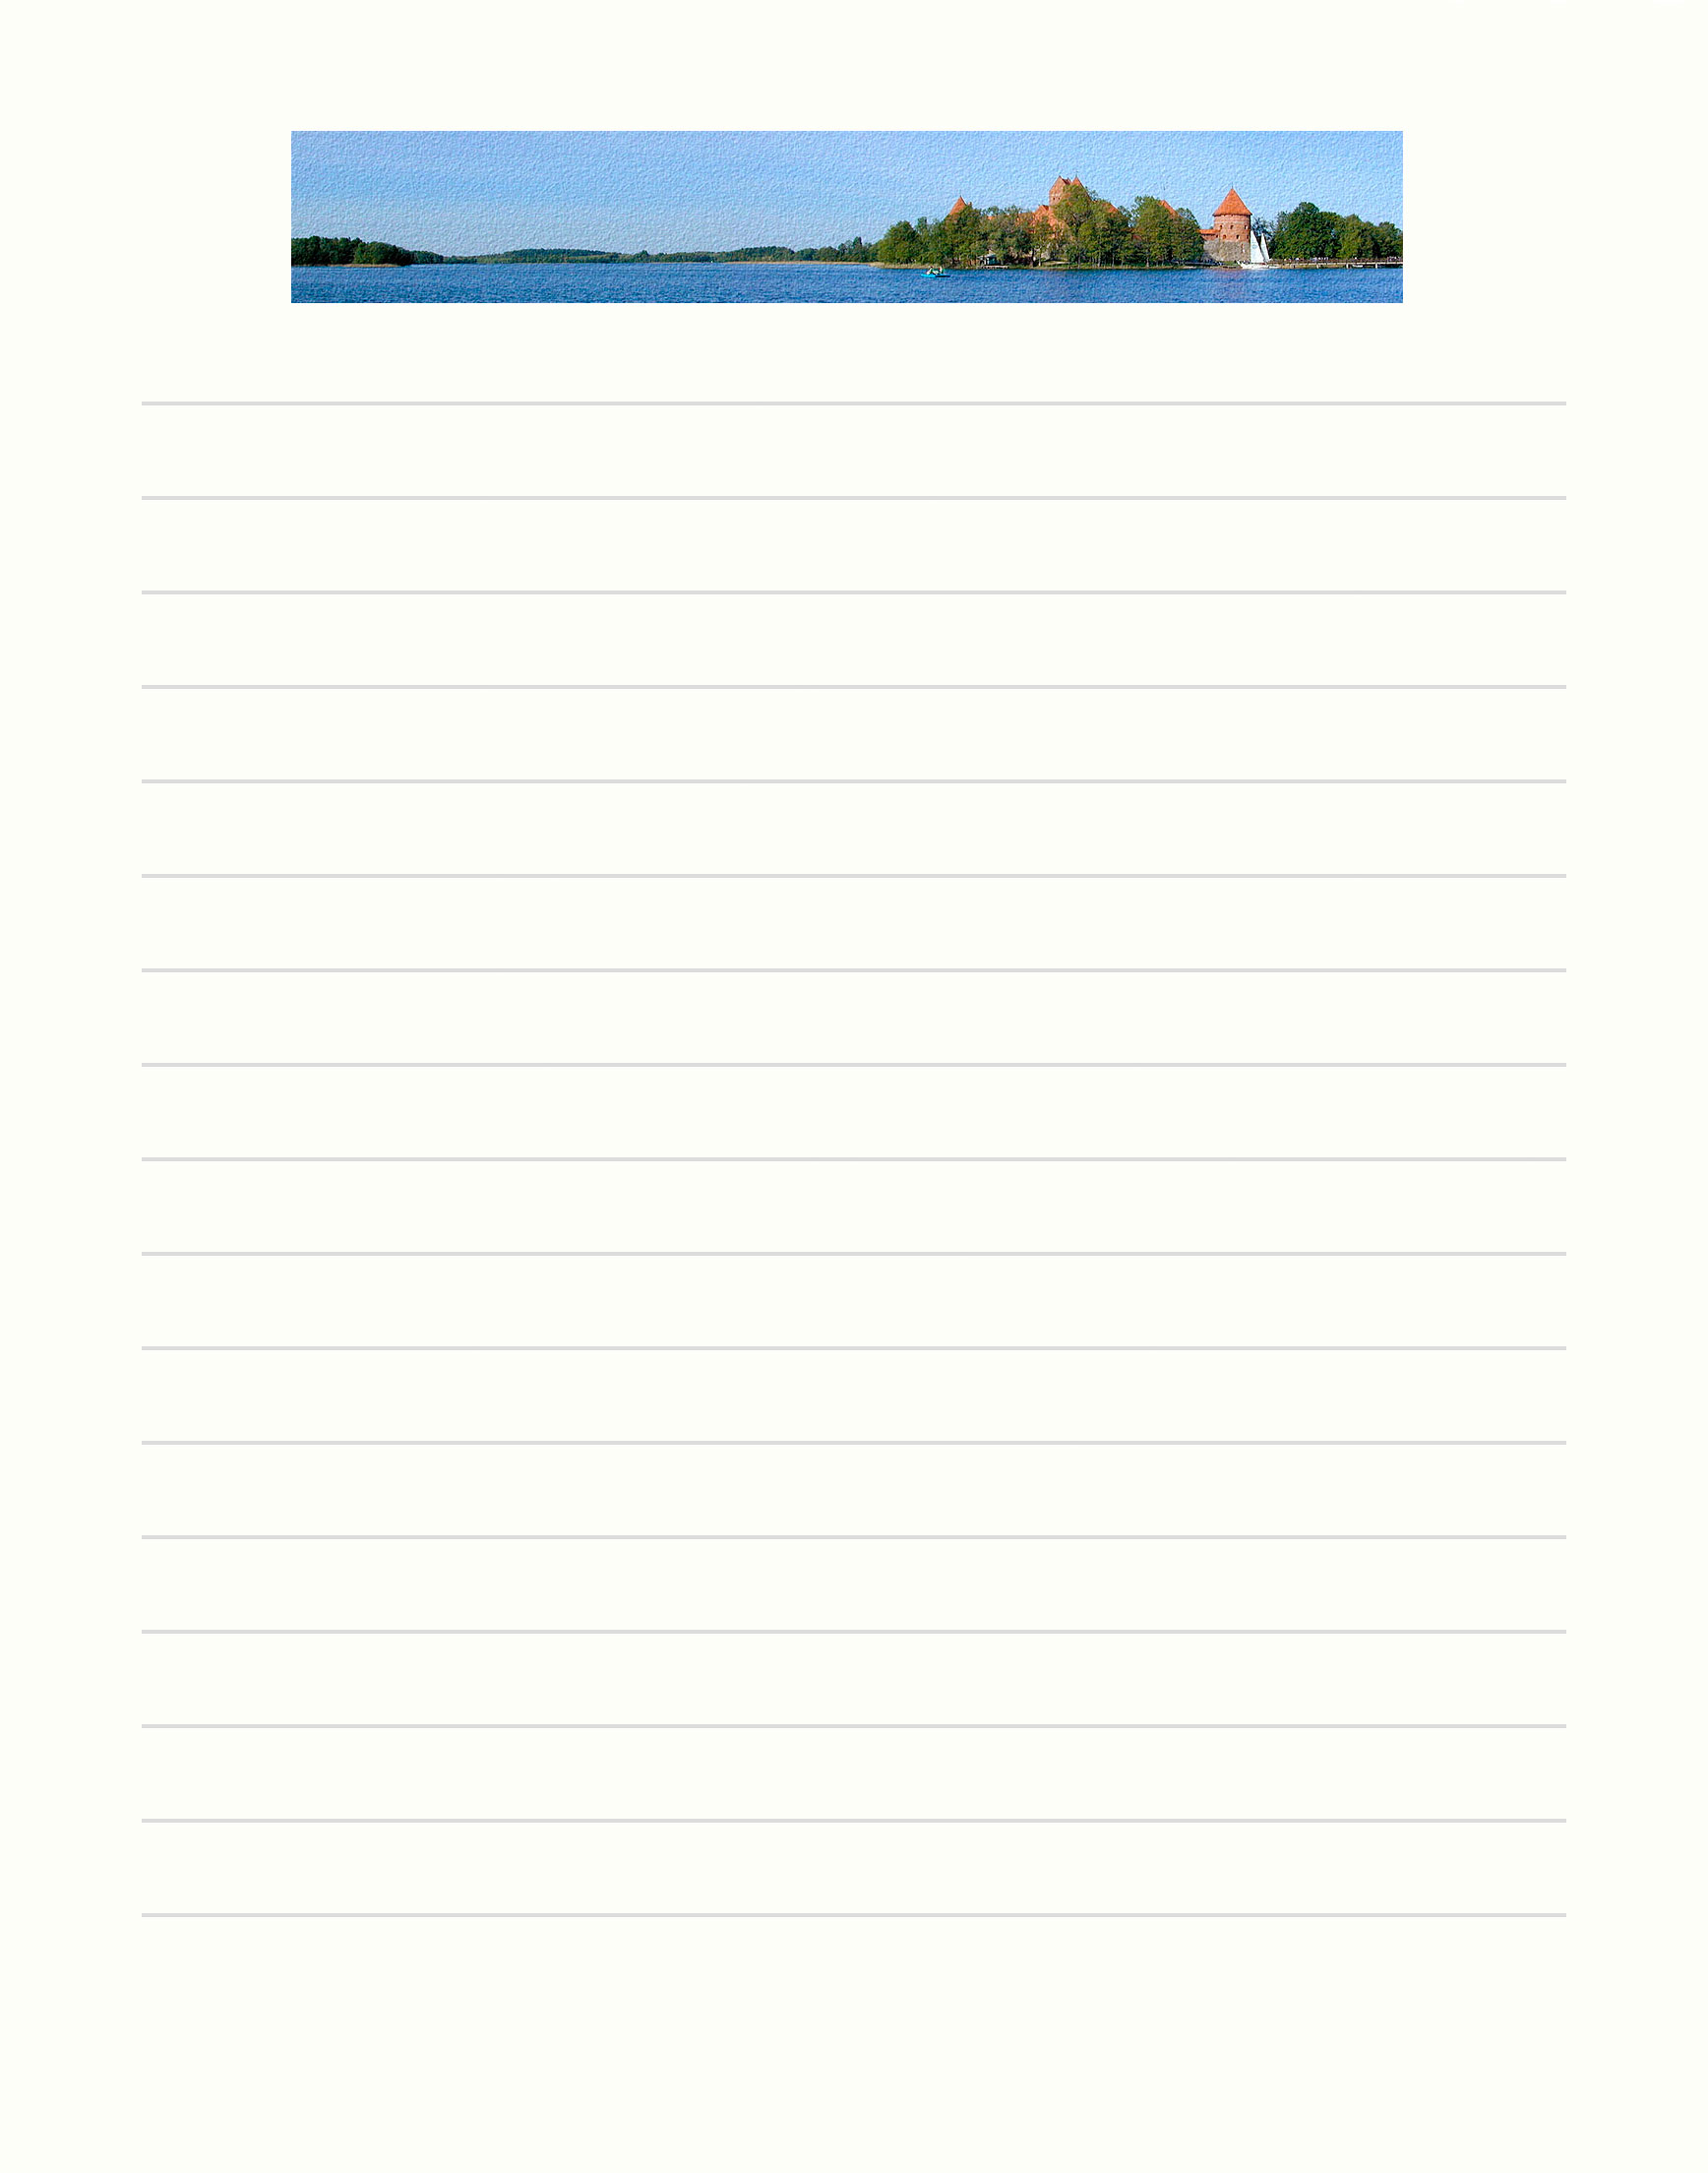 Printable Lined Paper   Creative Templates  Free Stationery Image - Free Printable Lined Stationery